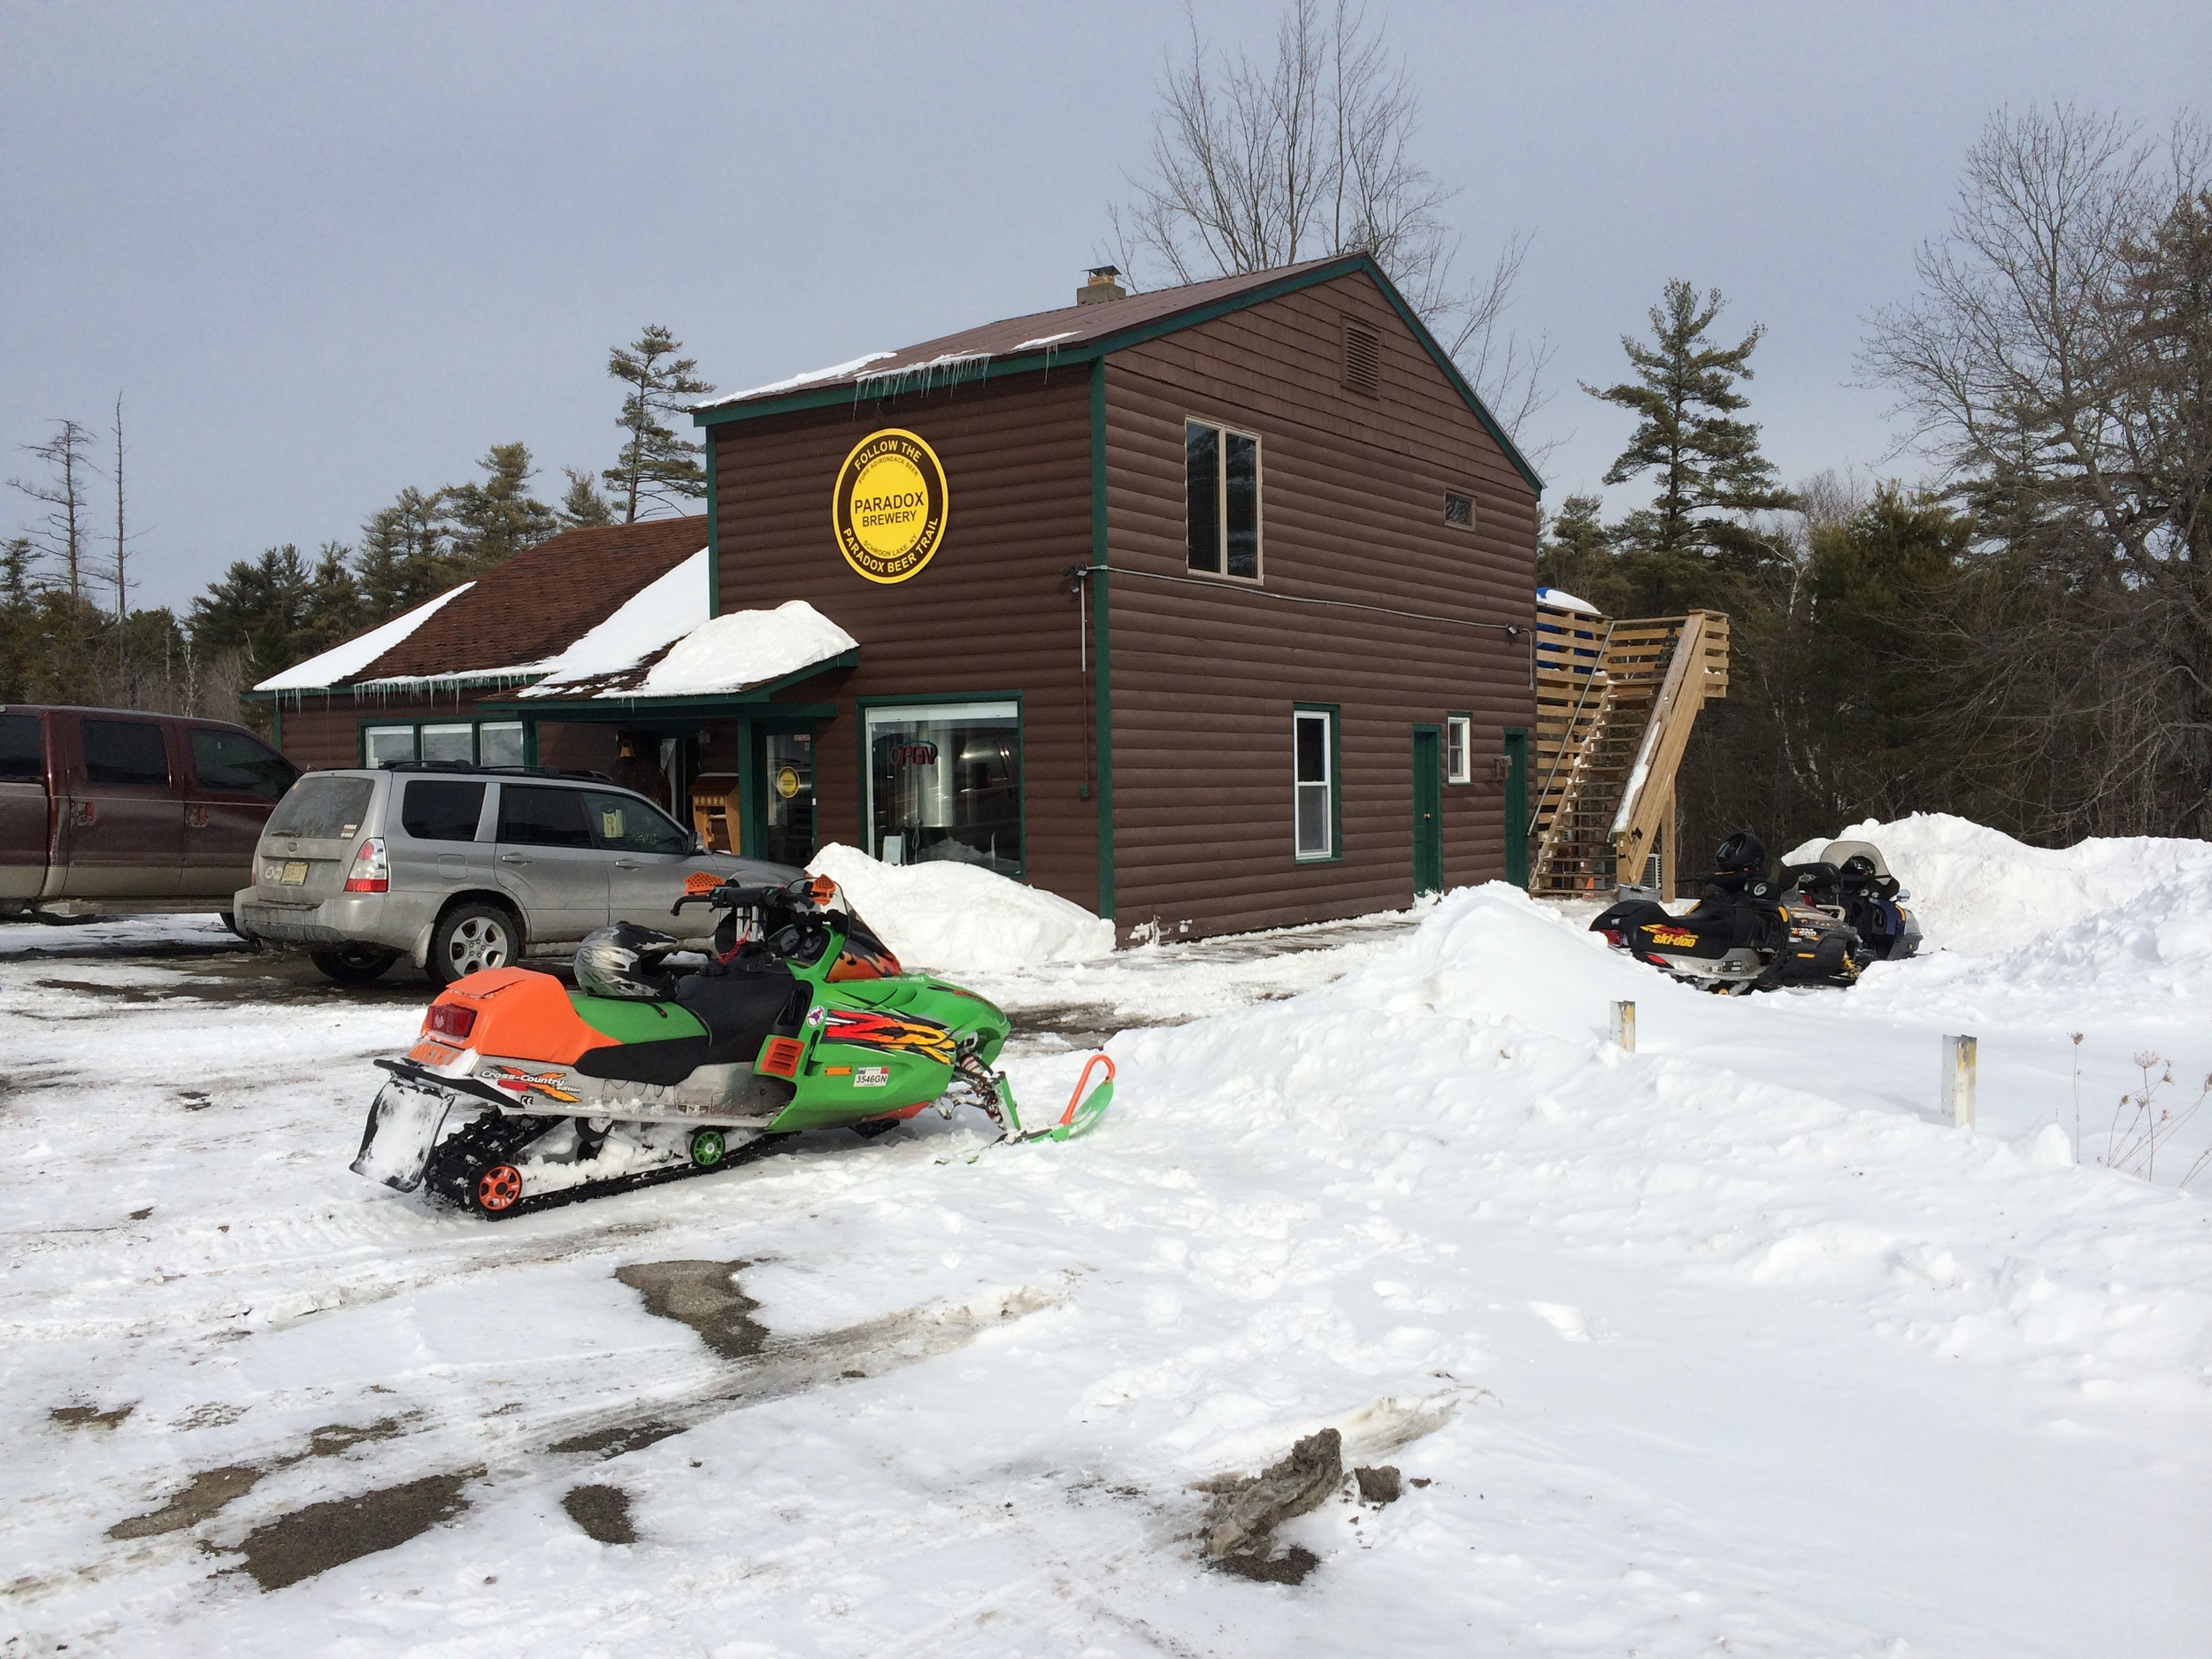 Sledding to the Brewery